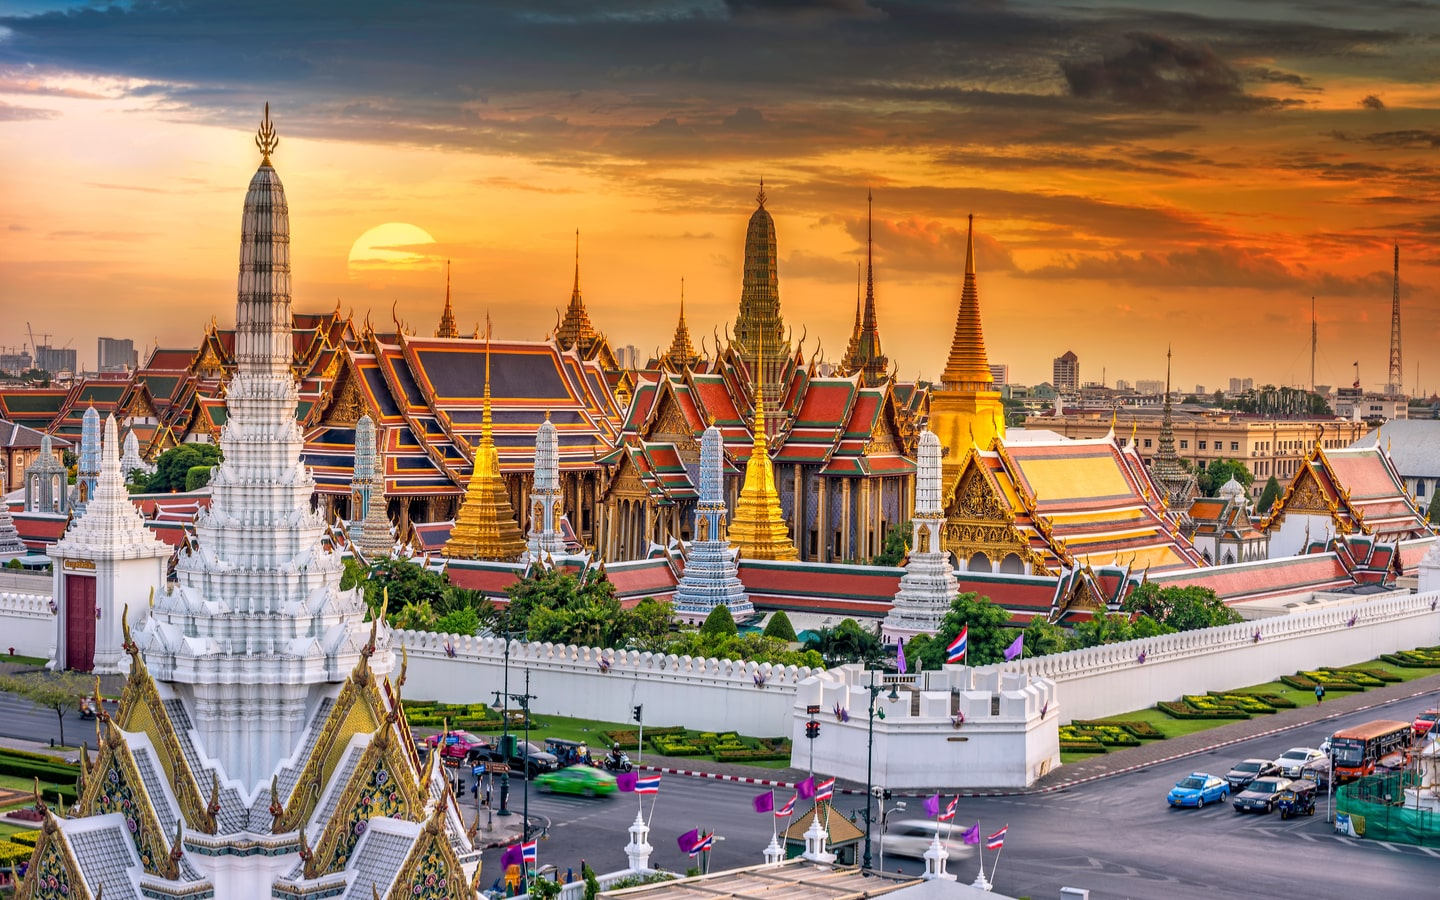 View of Grand Palace in Bangkok